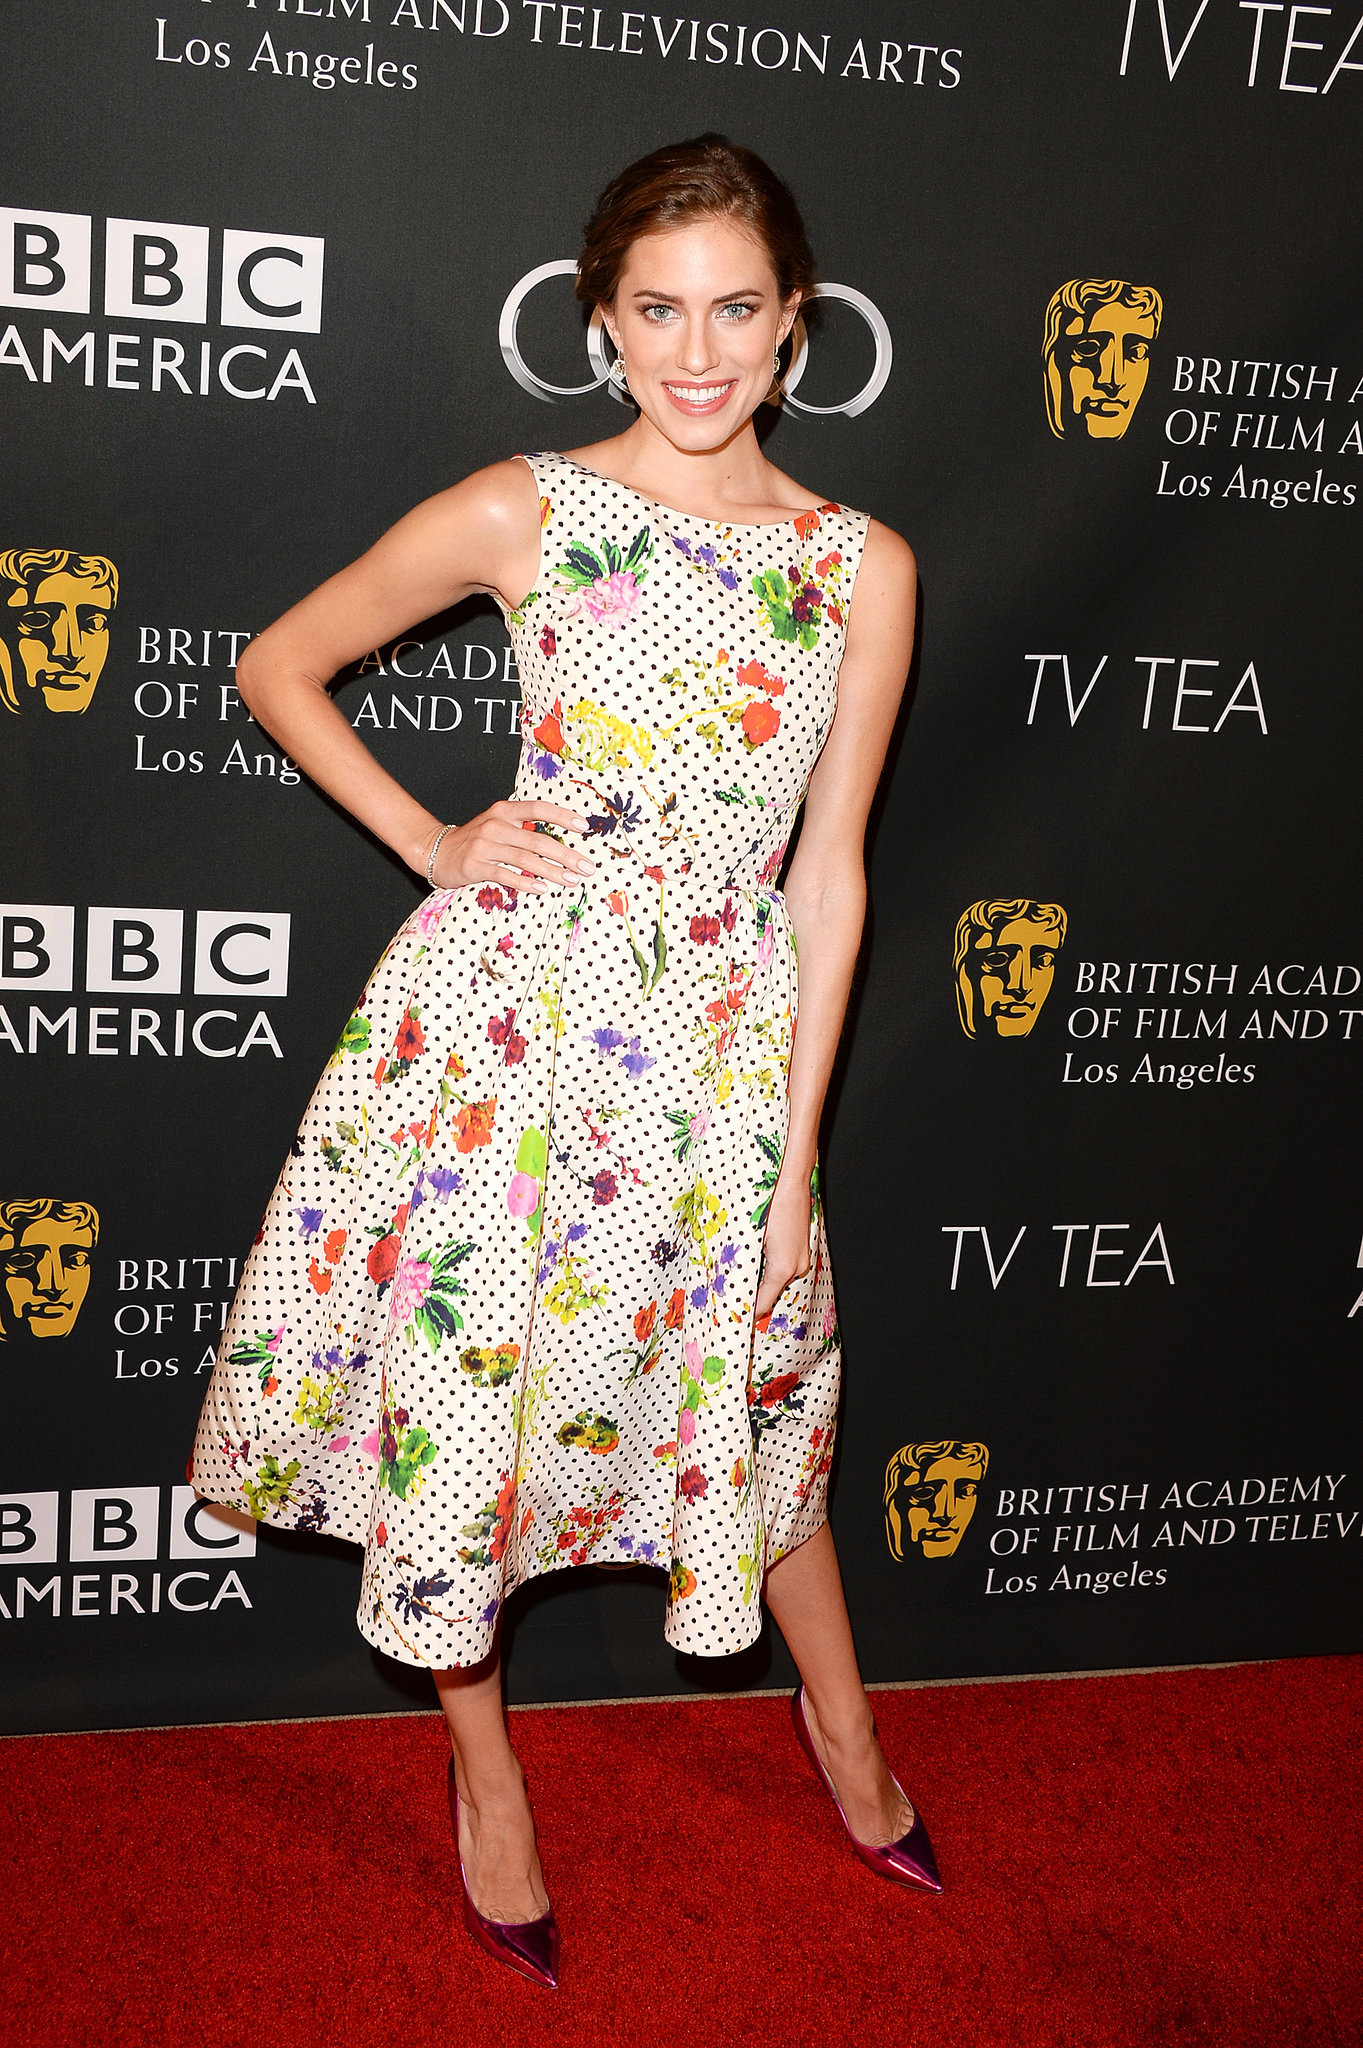 Allison Williams went retro in a floral Oscar de la Renta dress and metallic pumps at the BAFTA LA TV Tea Party.